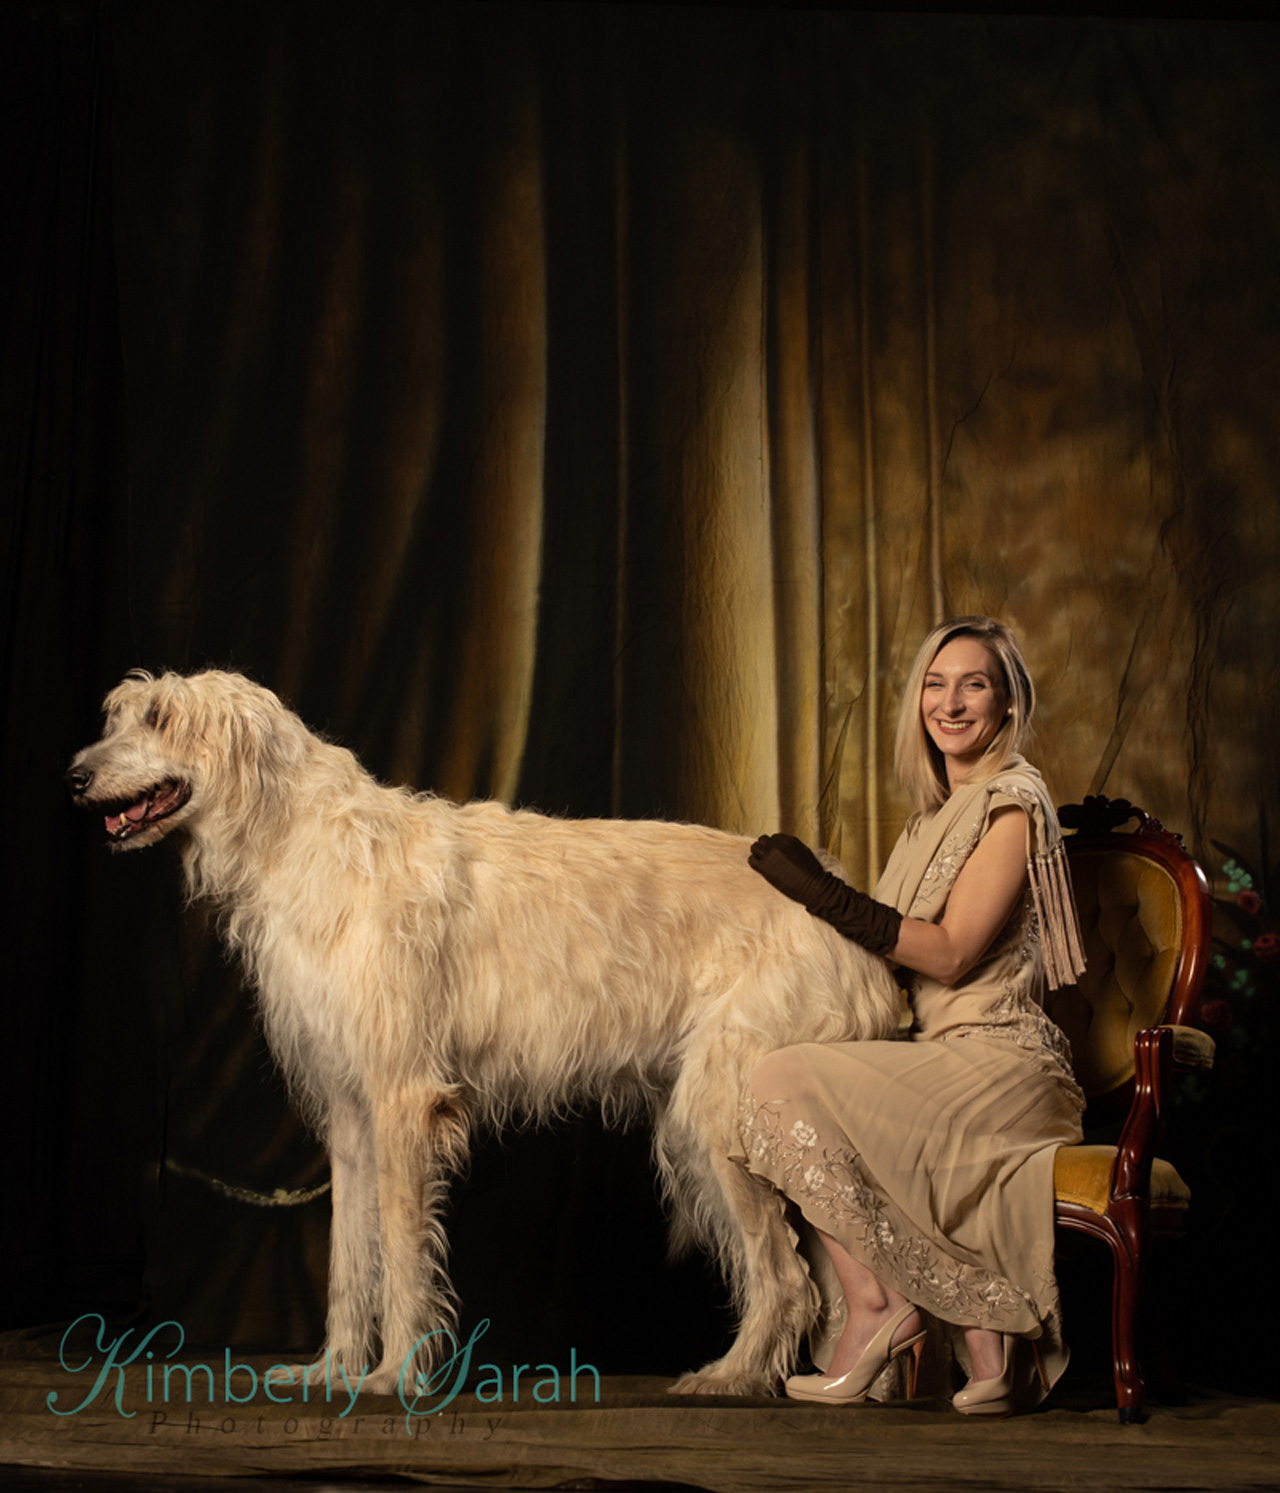 kimberly sarah photography, irish wolfhound, bts, outtakes, fashion, 20s style